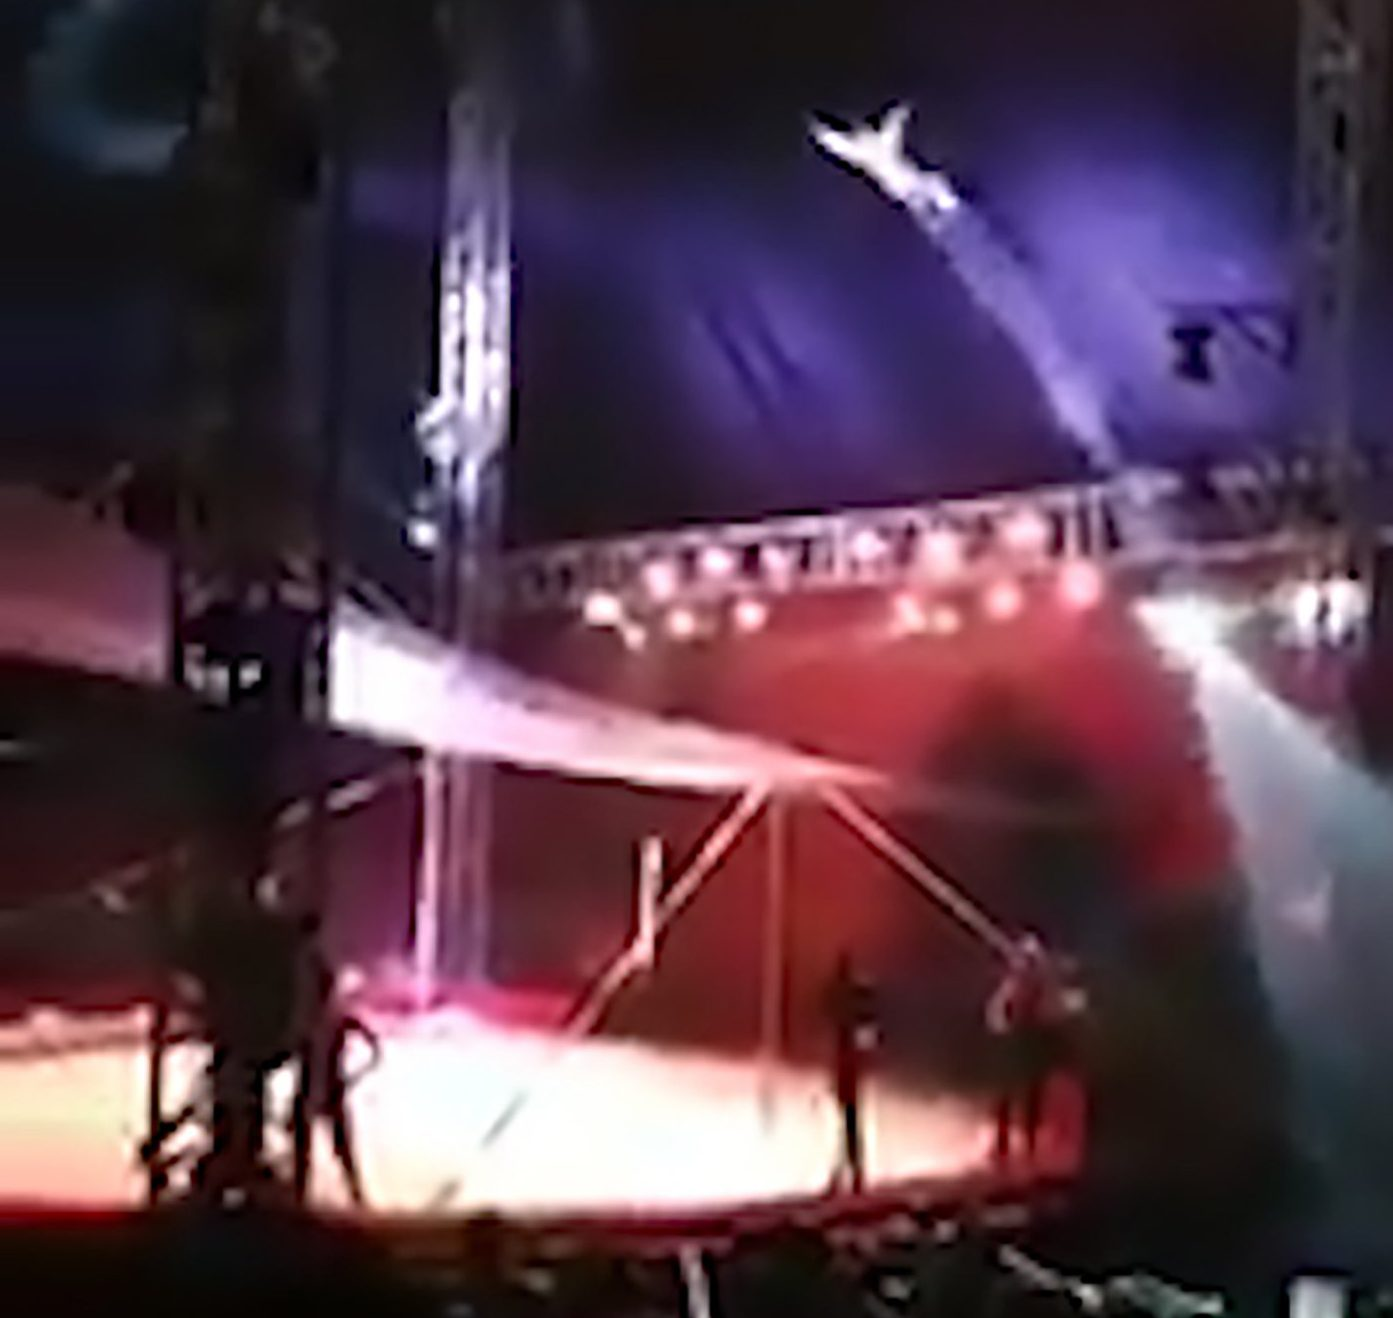 "Pic Shows: The man being shot out of the canon and sent airborne; This is the startling moment a circus performer is blasted out of a cannon and flies through the air but he overshoots the net and reportedly hit a clown. The images were recorded at the American Circus in the Arauco Maipu shopping centre in the Maipu district of the Chilean capital Santiago. In the video, a circus ring can be seen complete with spotlight and a large crowd when a performer comes flying over the back curtain having reportedly been fired from a cannon. The performer, known as ???Hombre Bala??? (Bullet Man) flies through the air but overshoots his landing and crashes to the floor in between two stands packed with spectators. Local media report the performer fell into a clown who was knocked to the ground. The Bullet Man reportedly was reportedly rushed to a local hospital where he was treated for fractures to his jaw and knees whilst the clown was unharmed. The injured performer is reportedly still under observation but in a stable condition. The operator of the cannon took the blame for the incident, telling local media: ""It was a mistake on my part, my apologies especially to the audience. ""I did not disconnect the air-supply hose and the compressor made the air return from the accumulator which then raised the pressure causing a longer distance than what is always programmed."" American Circus told reporters that their programmed shows will continue as planned."